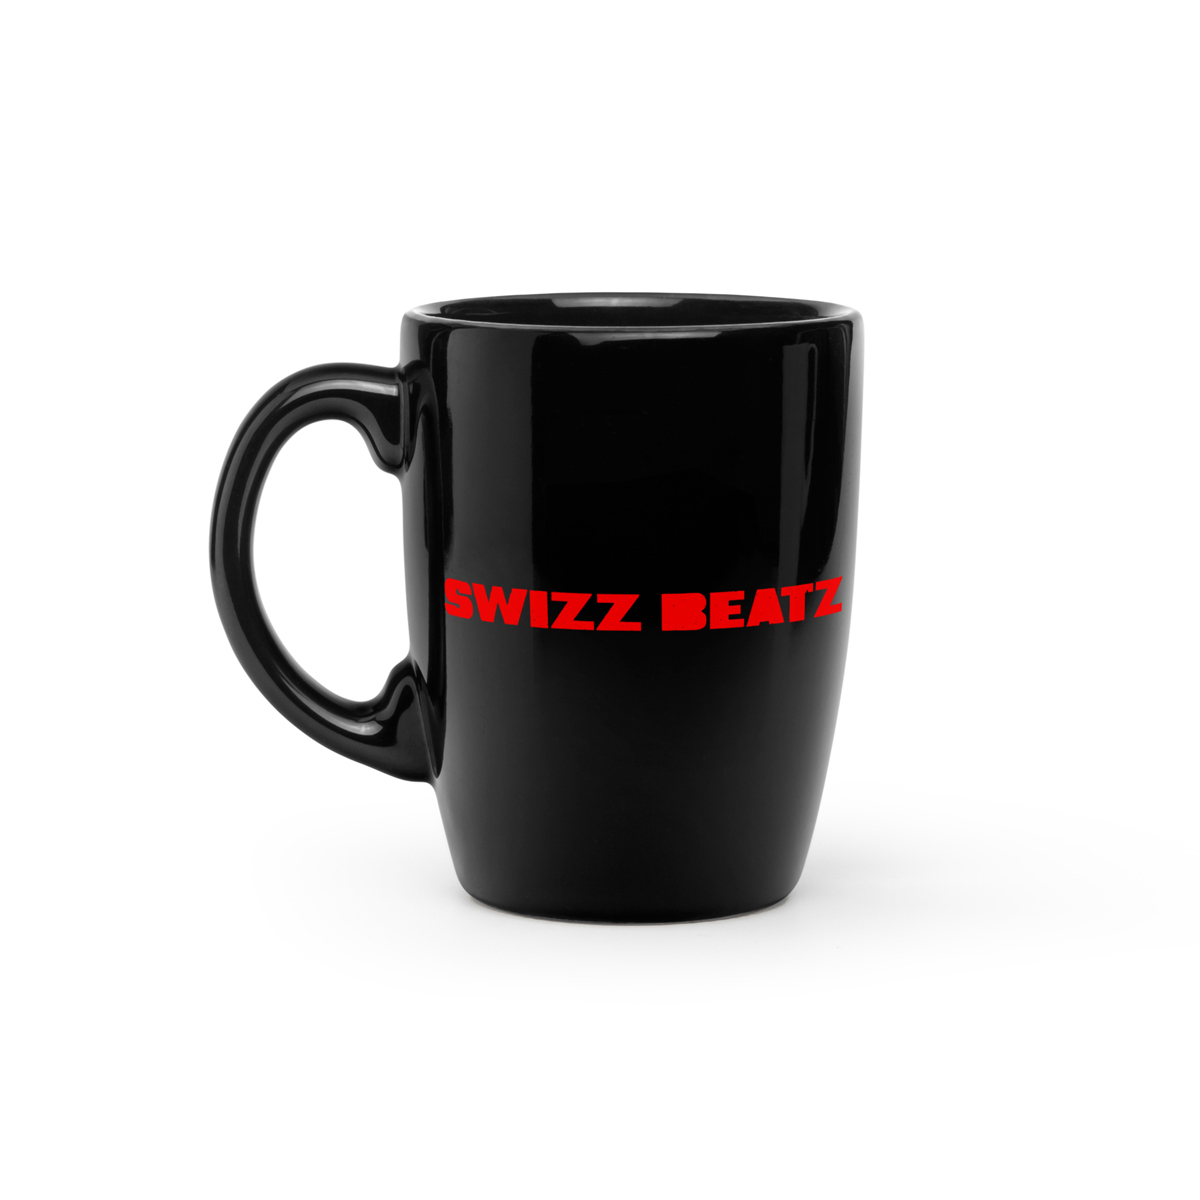 Poison mug + digital download